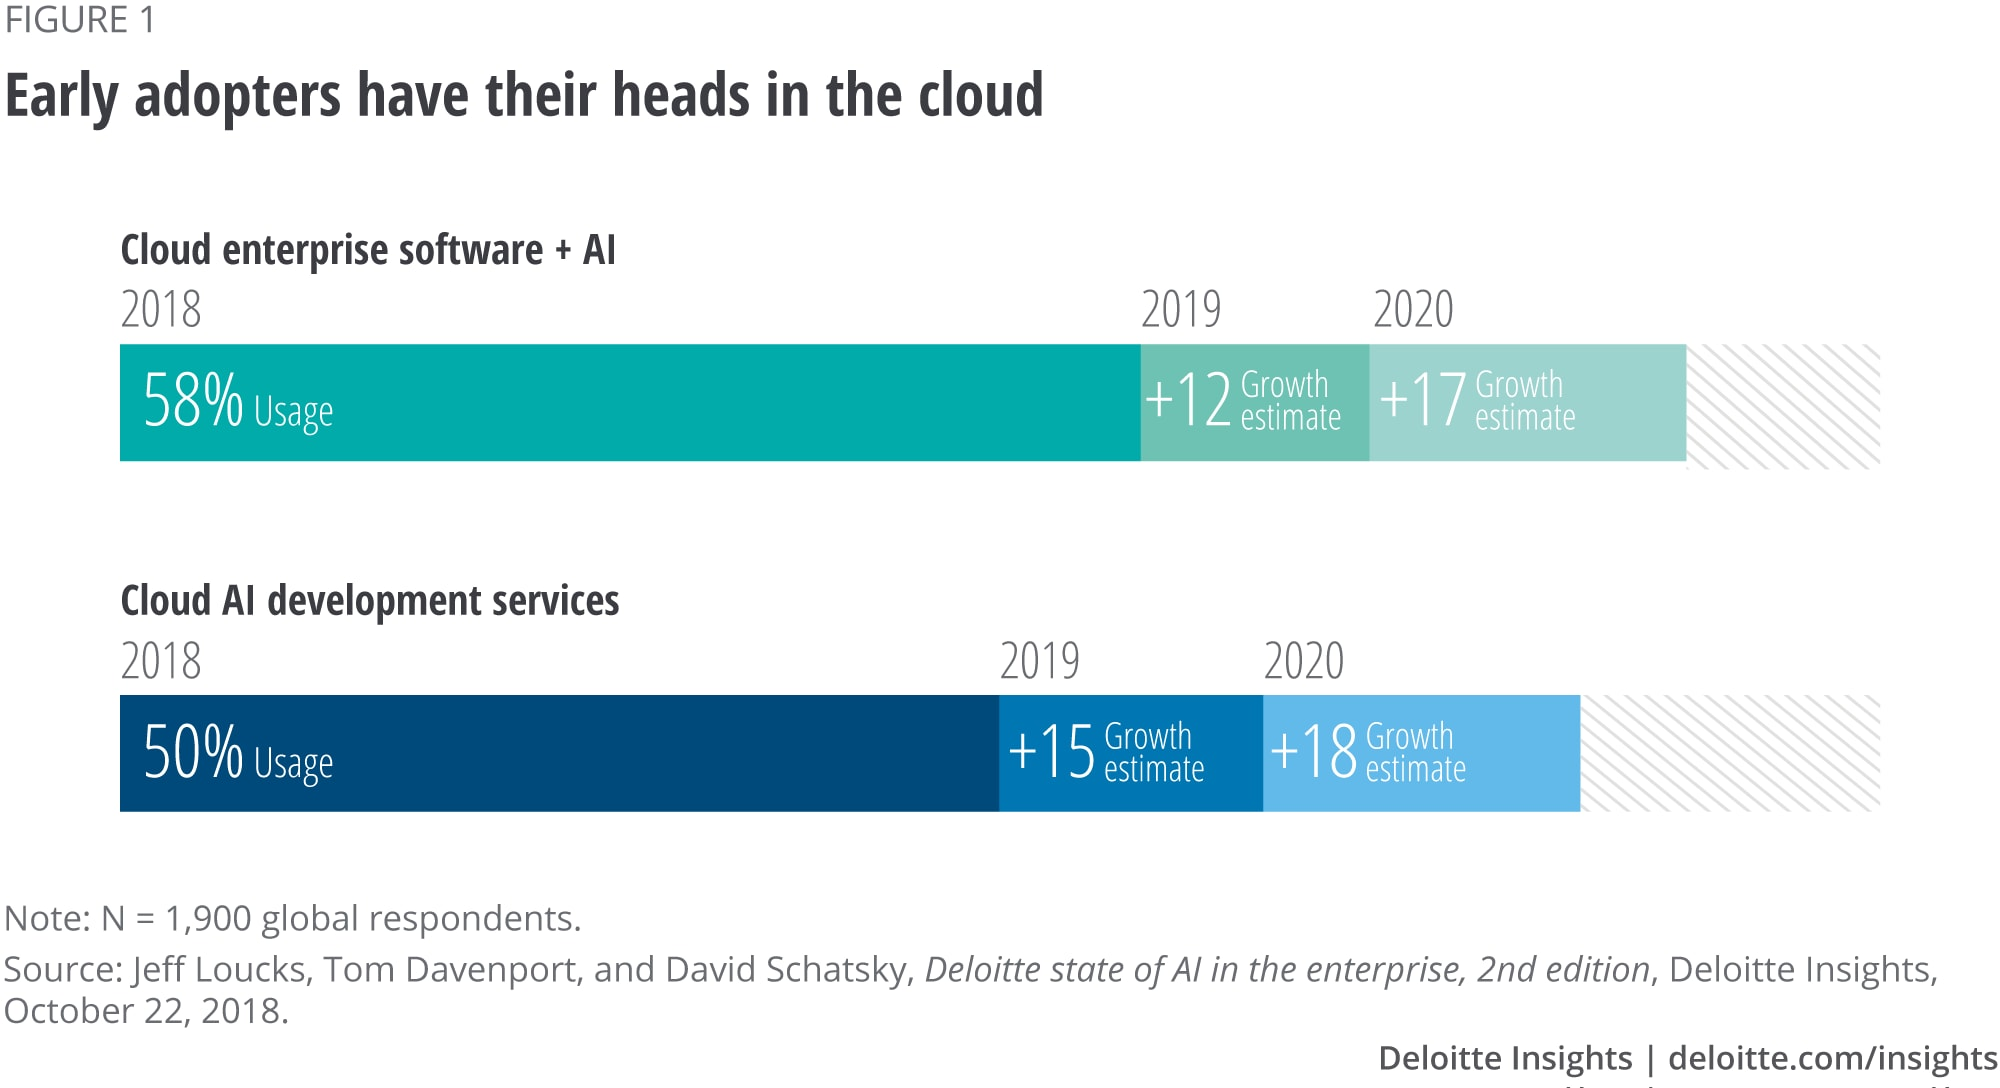 Early adopters have their heads in the cloud